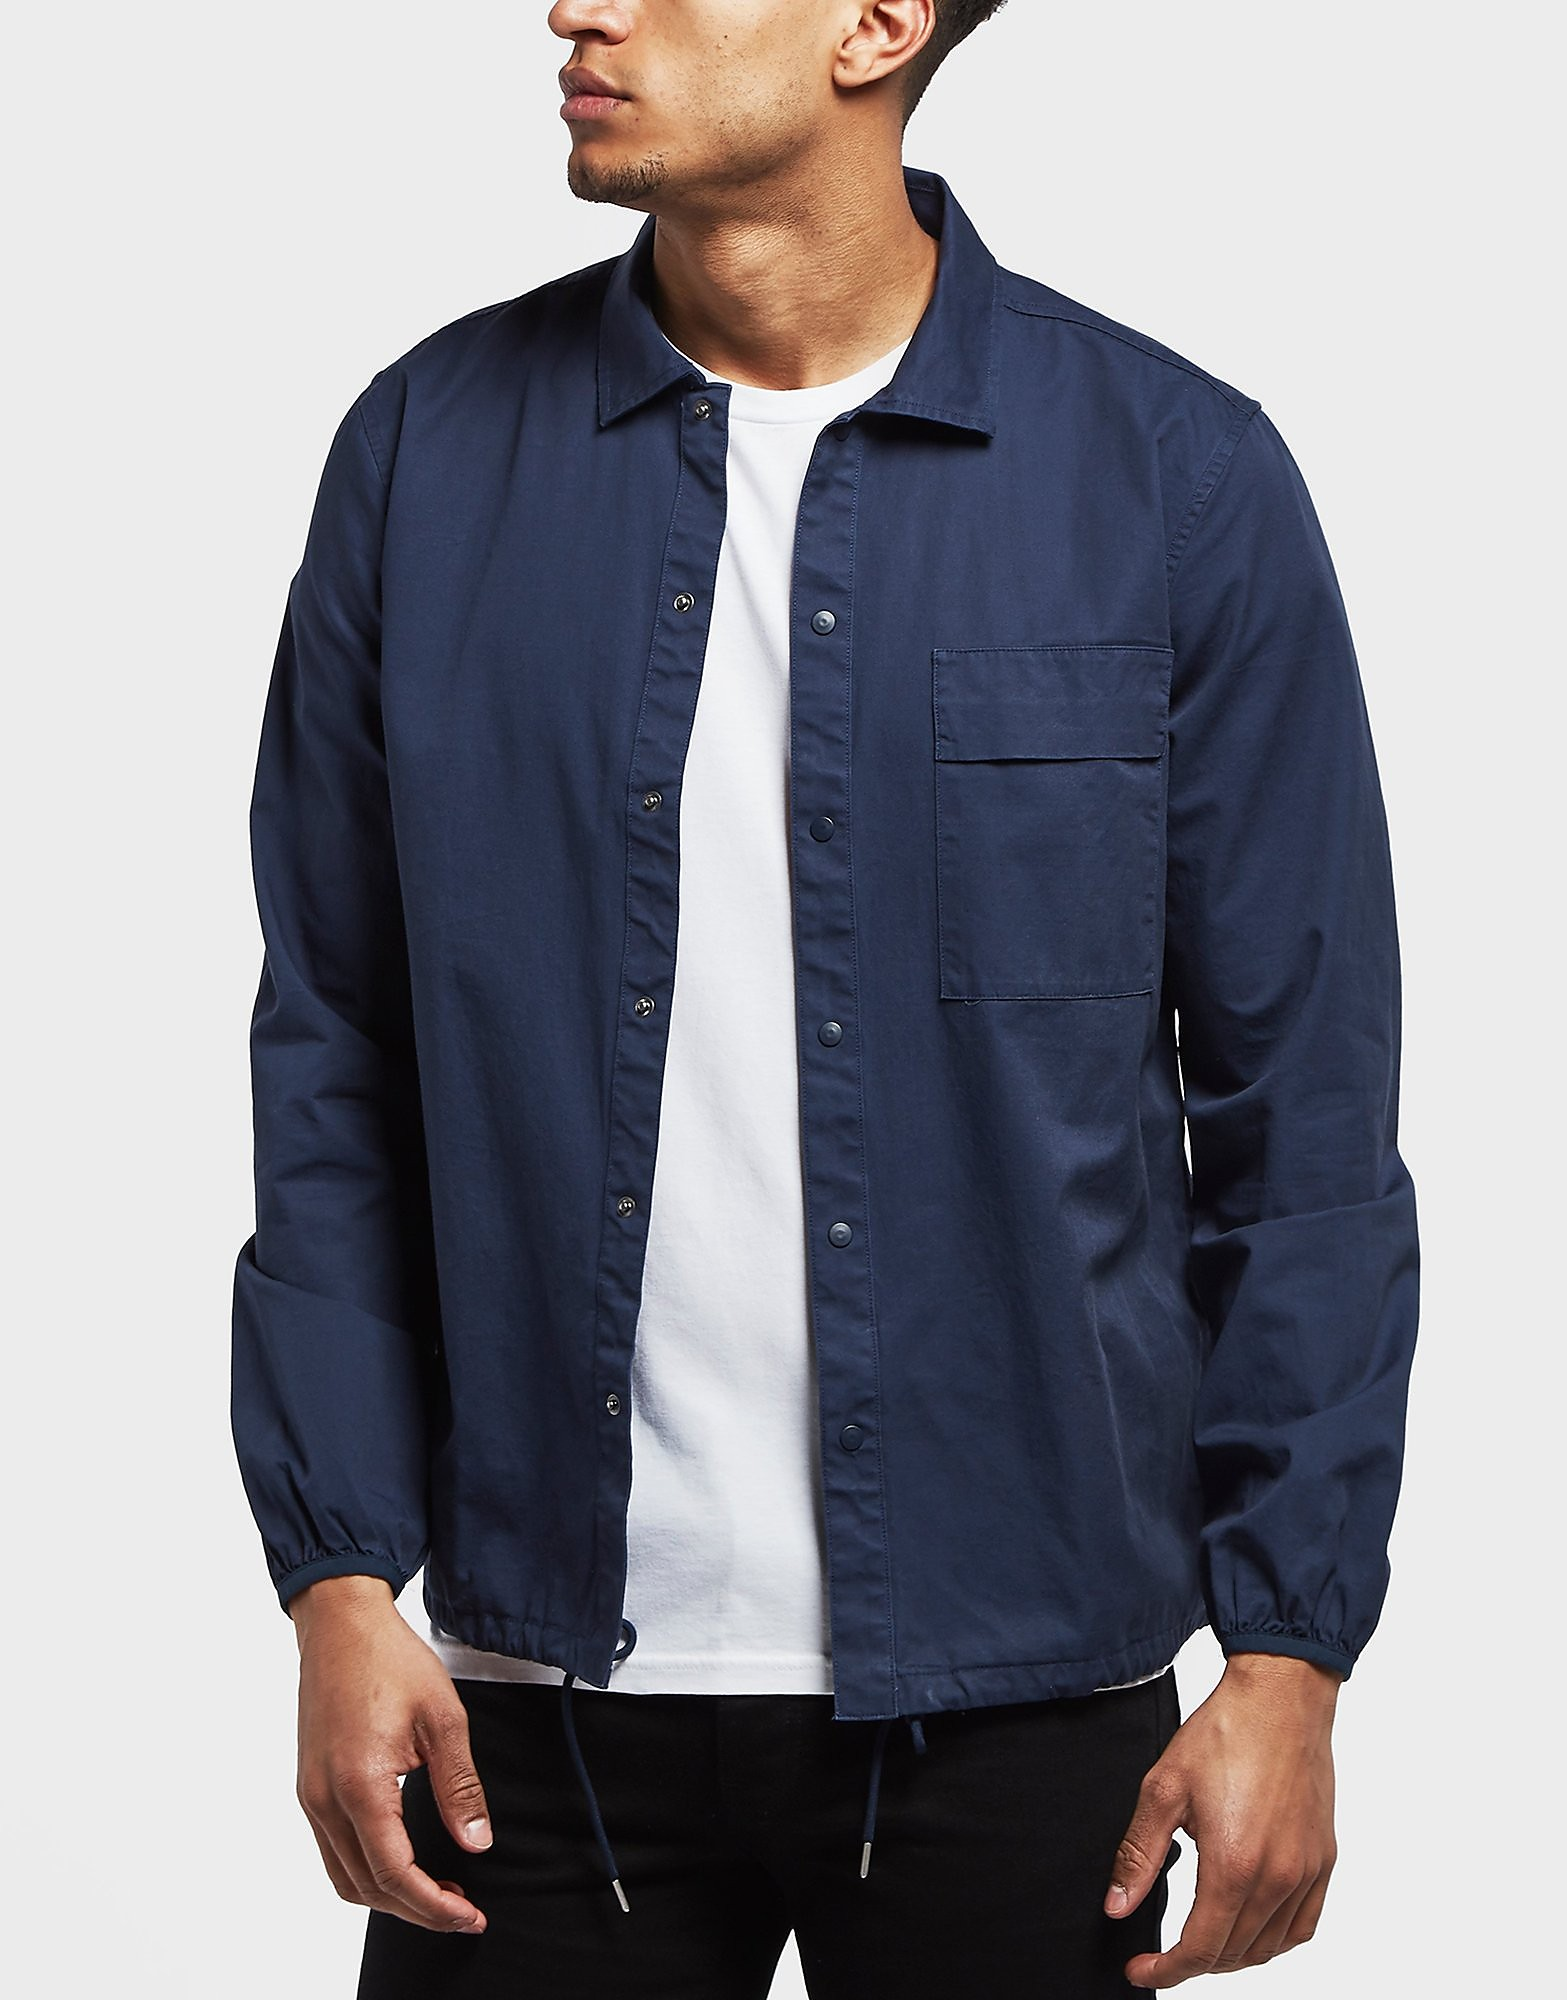 Penfield Blackstone Long Sleeve Overshirt